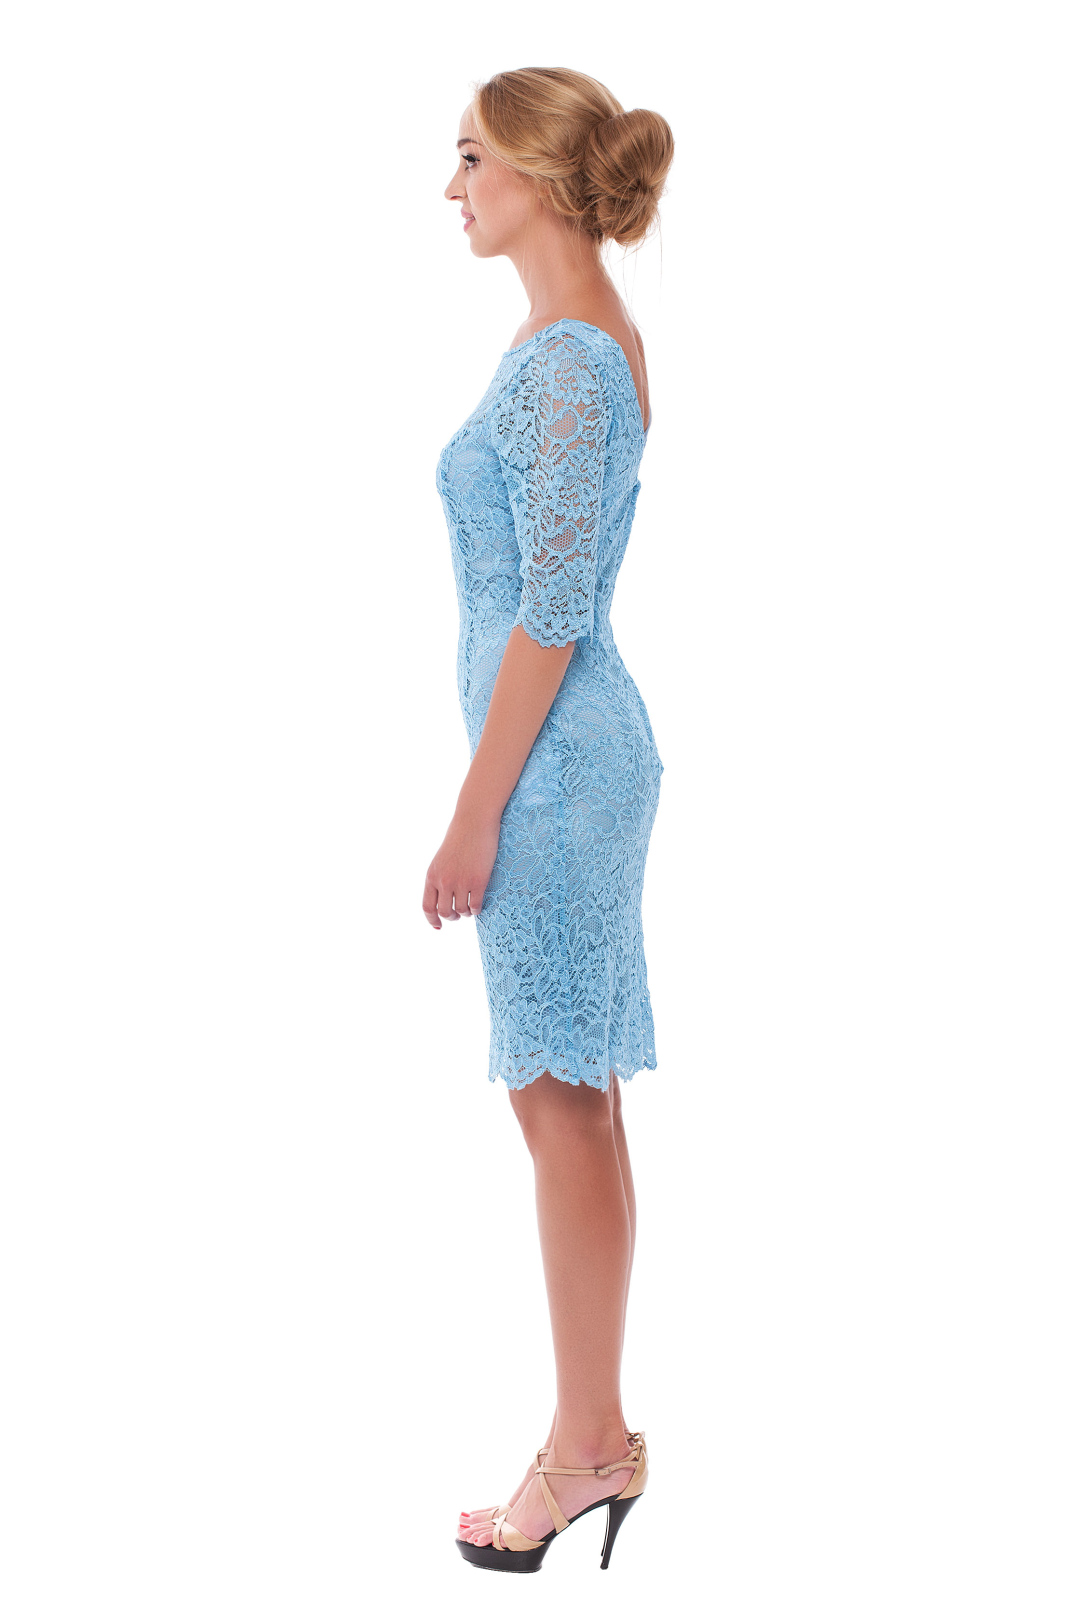 Blue Story in Lace Dress